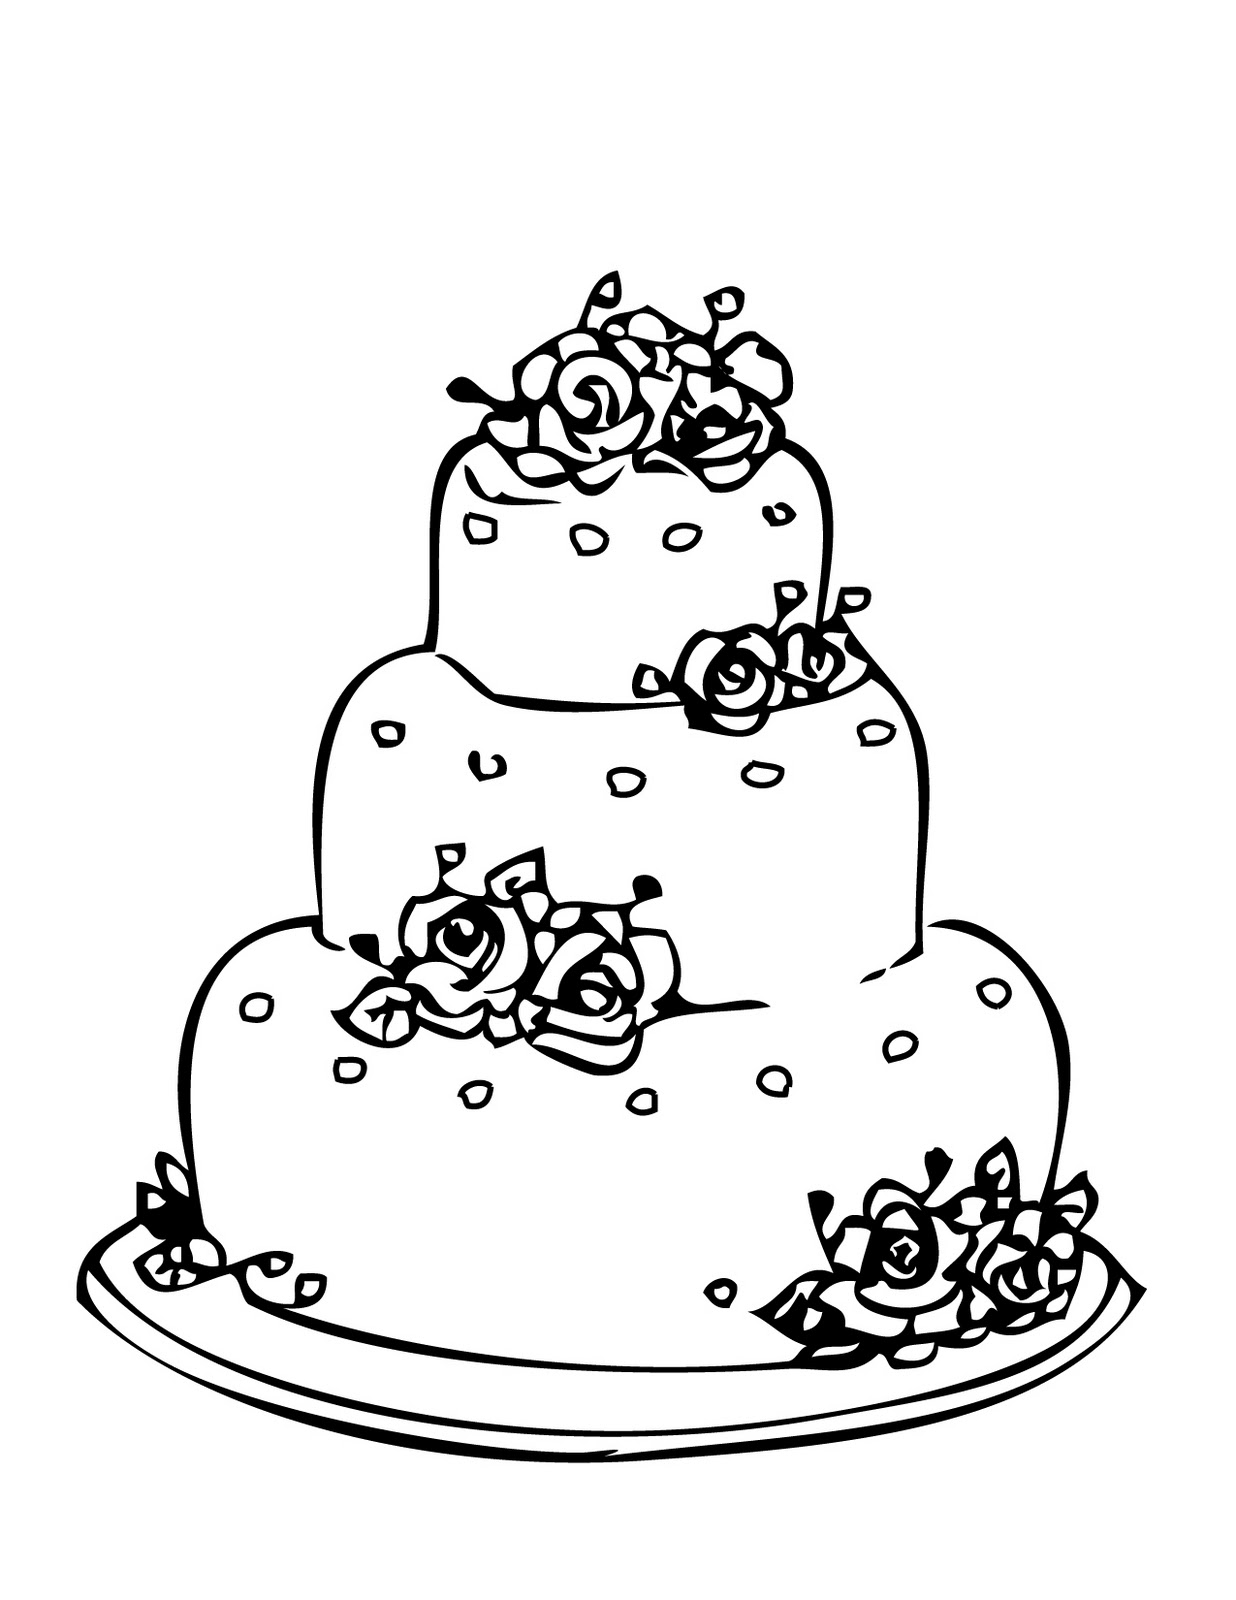 halloween coloring pages the wedding cakes coloring sheet for